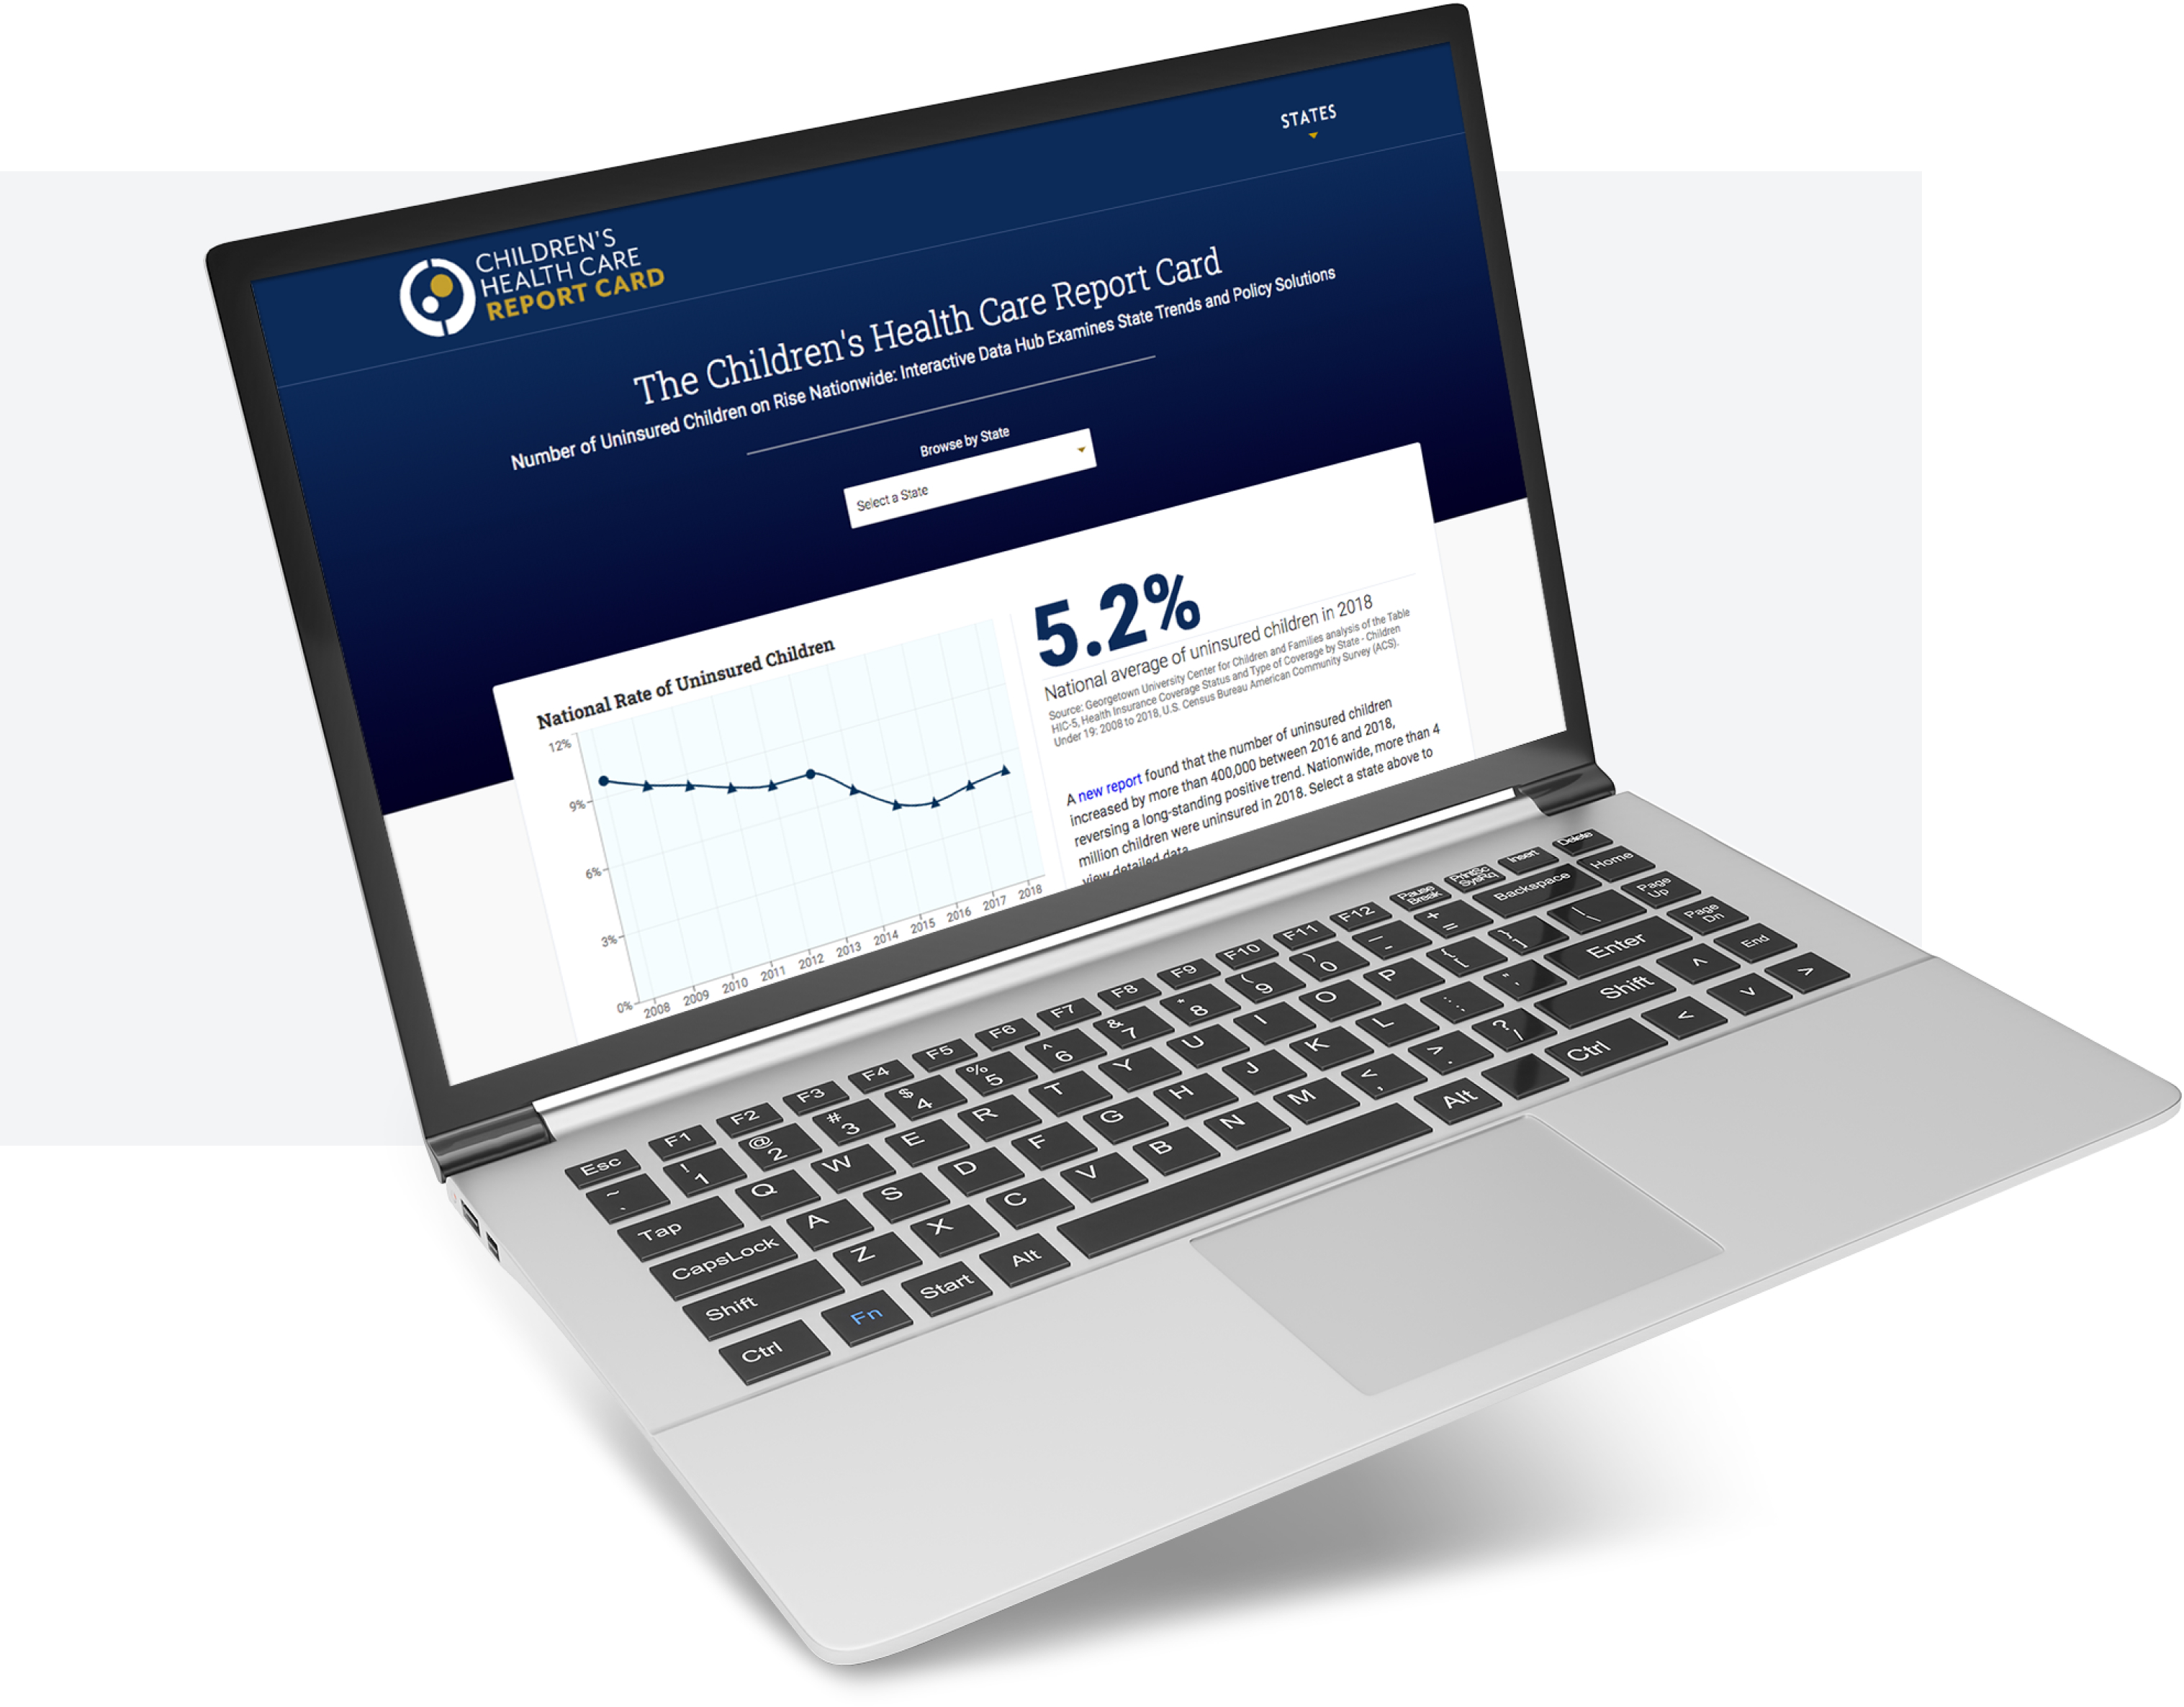 The Children's Health Care Report Card site with a blue header and a graph and statistic, displayed on a laptop screen